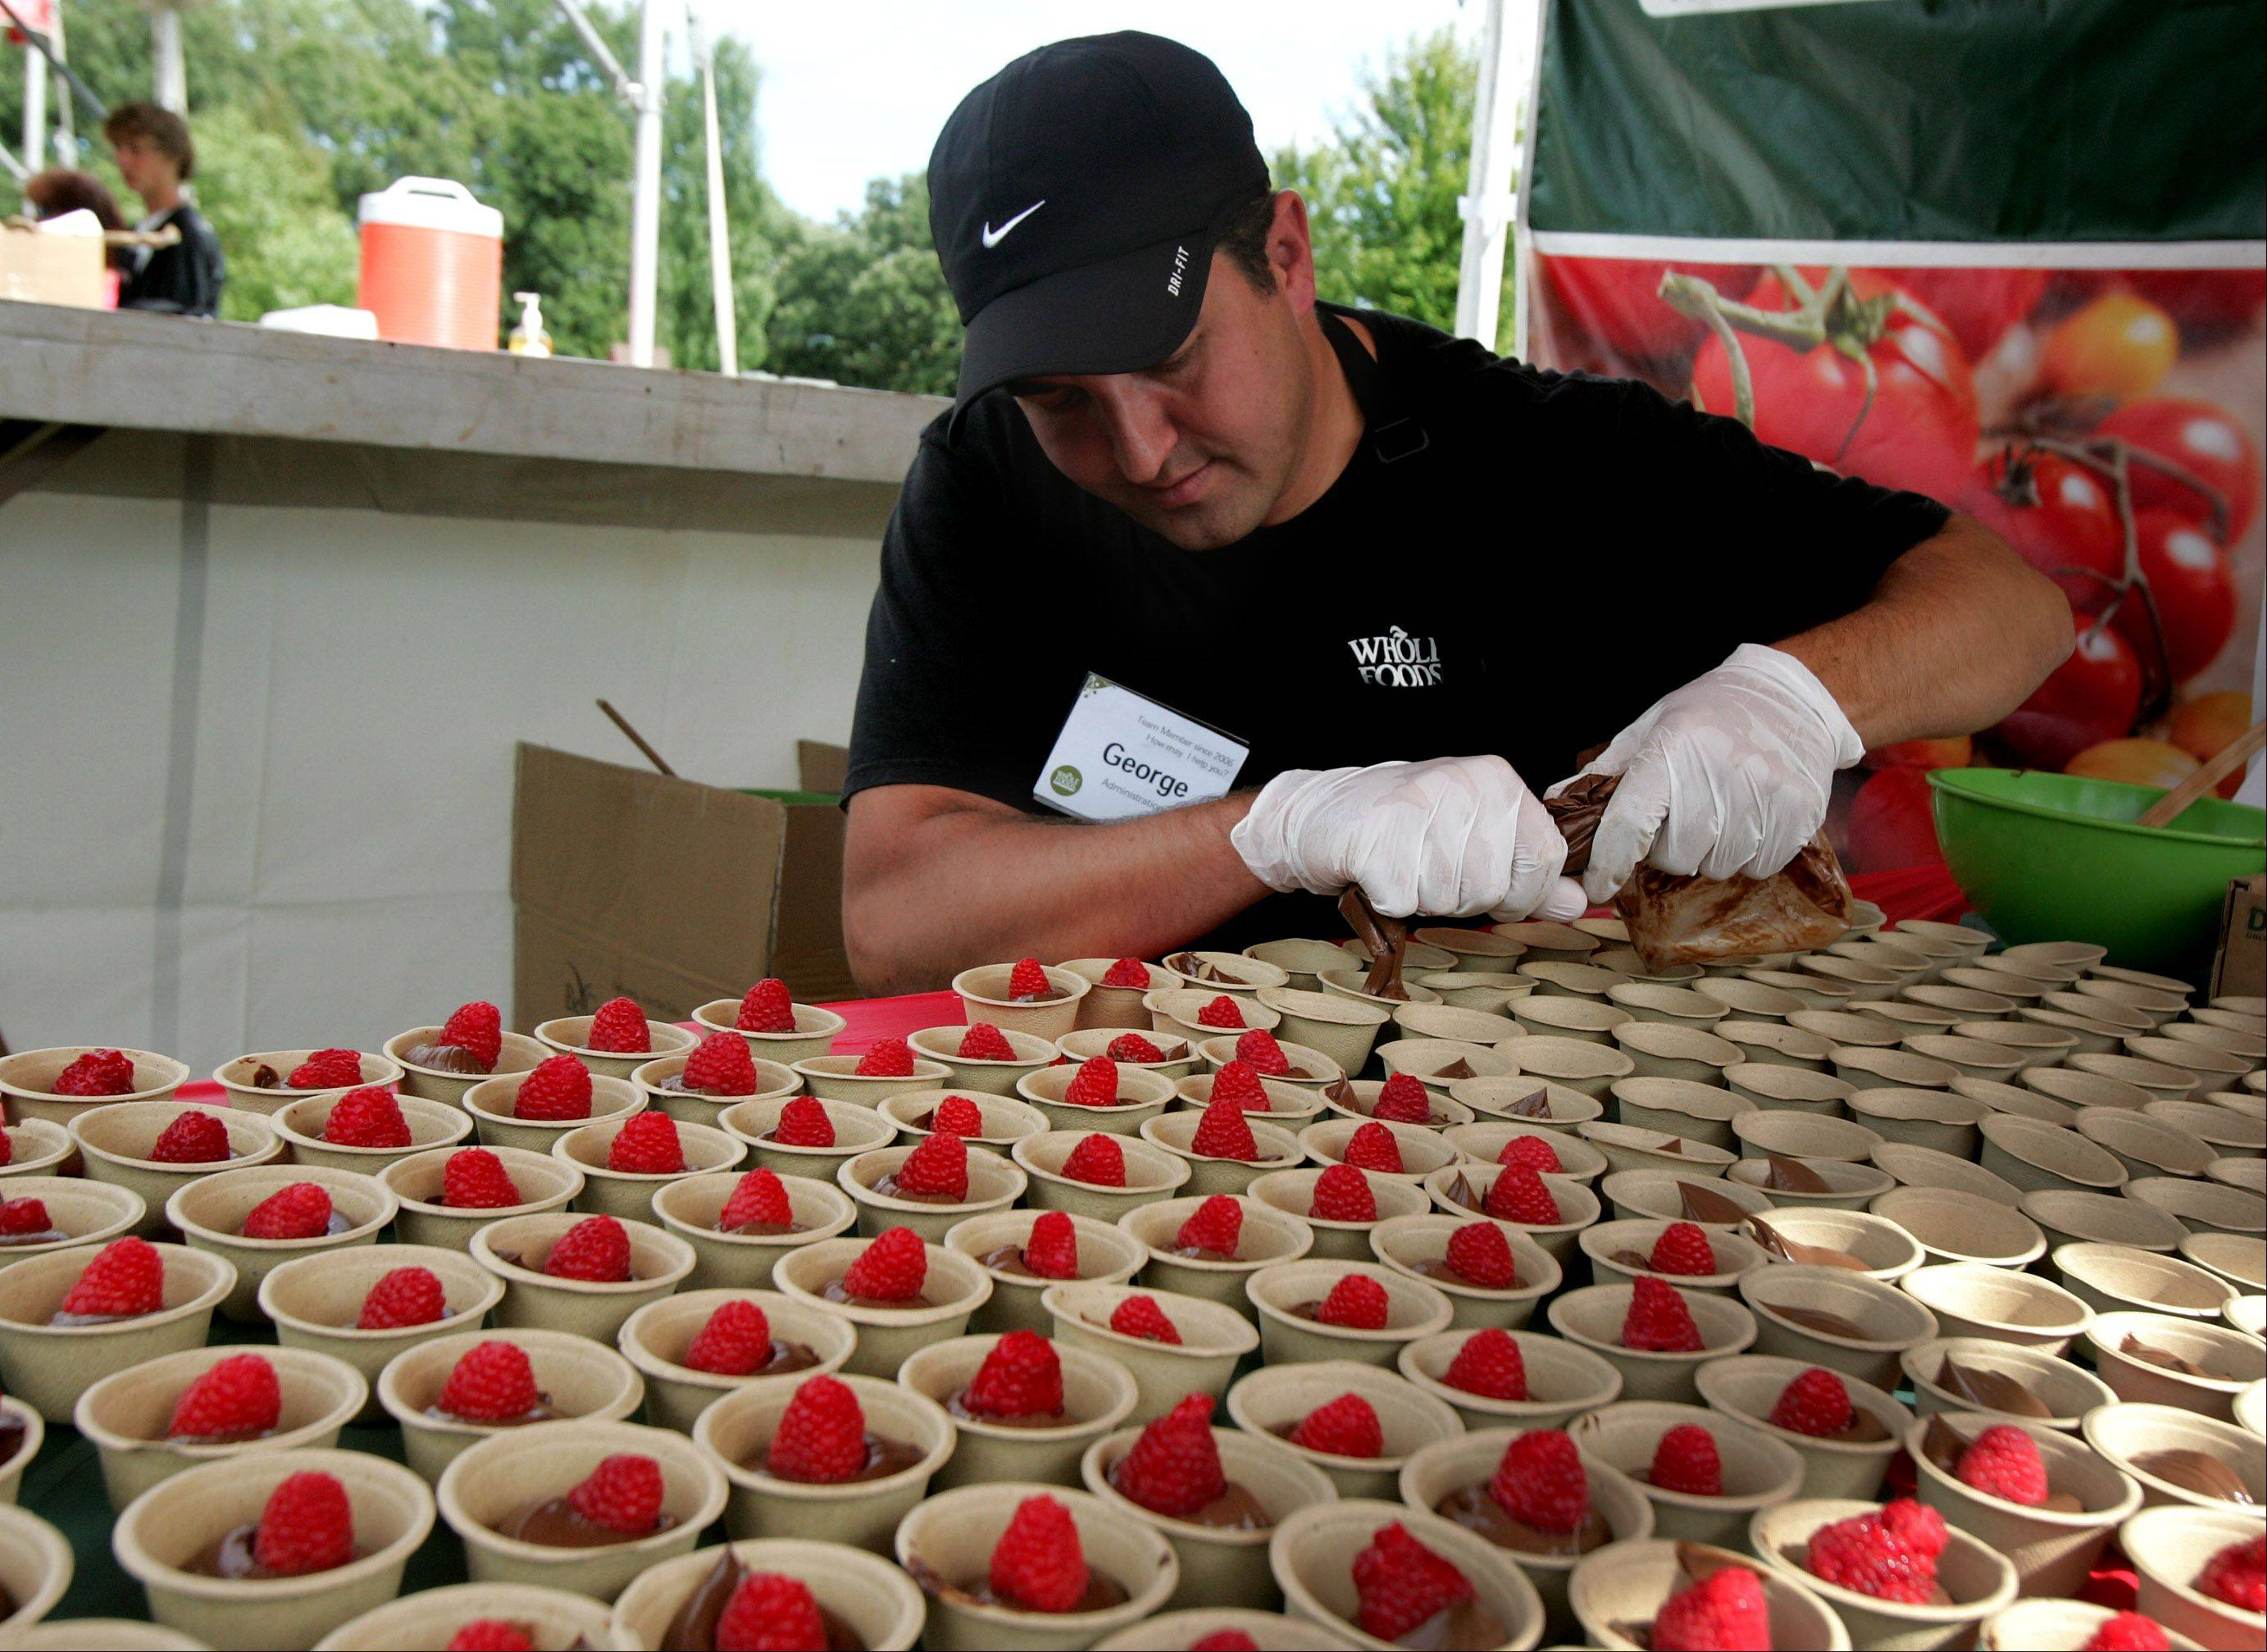 George Economos of Whole Food Markets makes vegan chocolate mousse with organic raspberries during a Taste of the Towns event at Paulus Park in Lake Zurich.